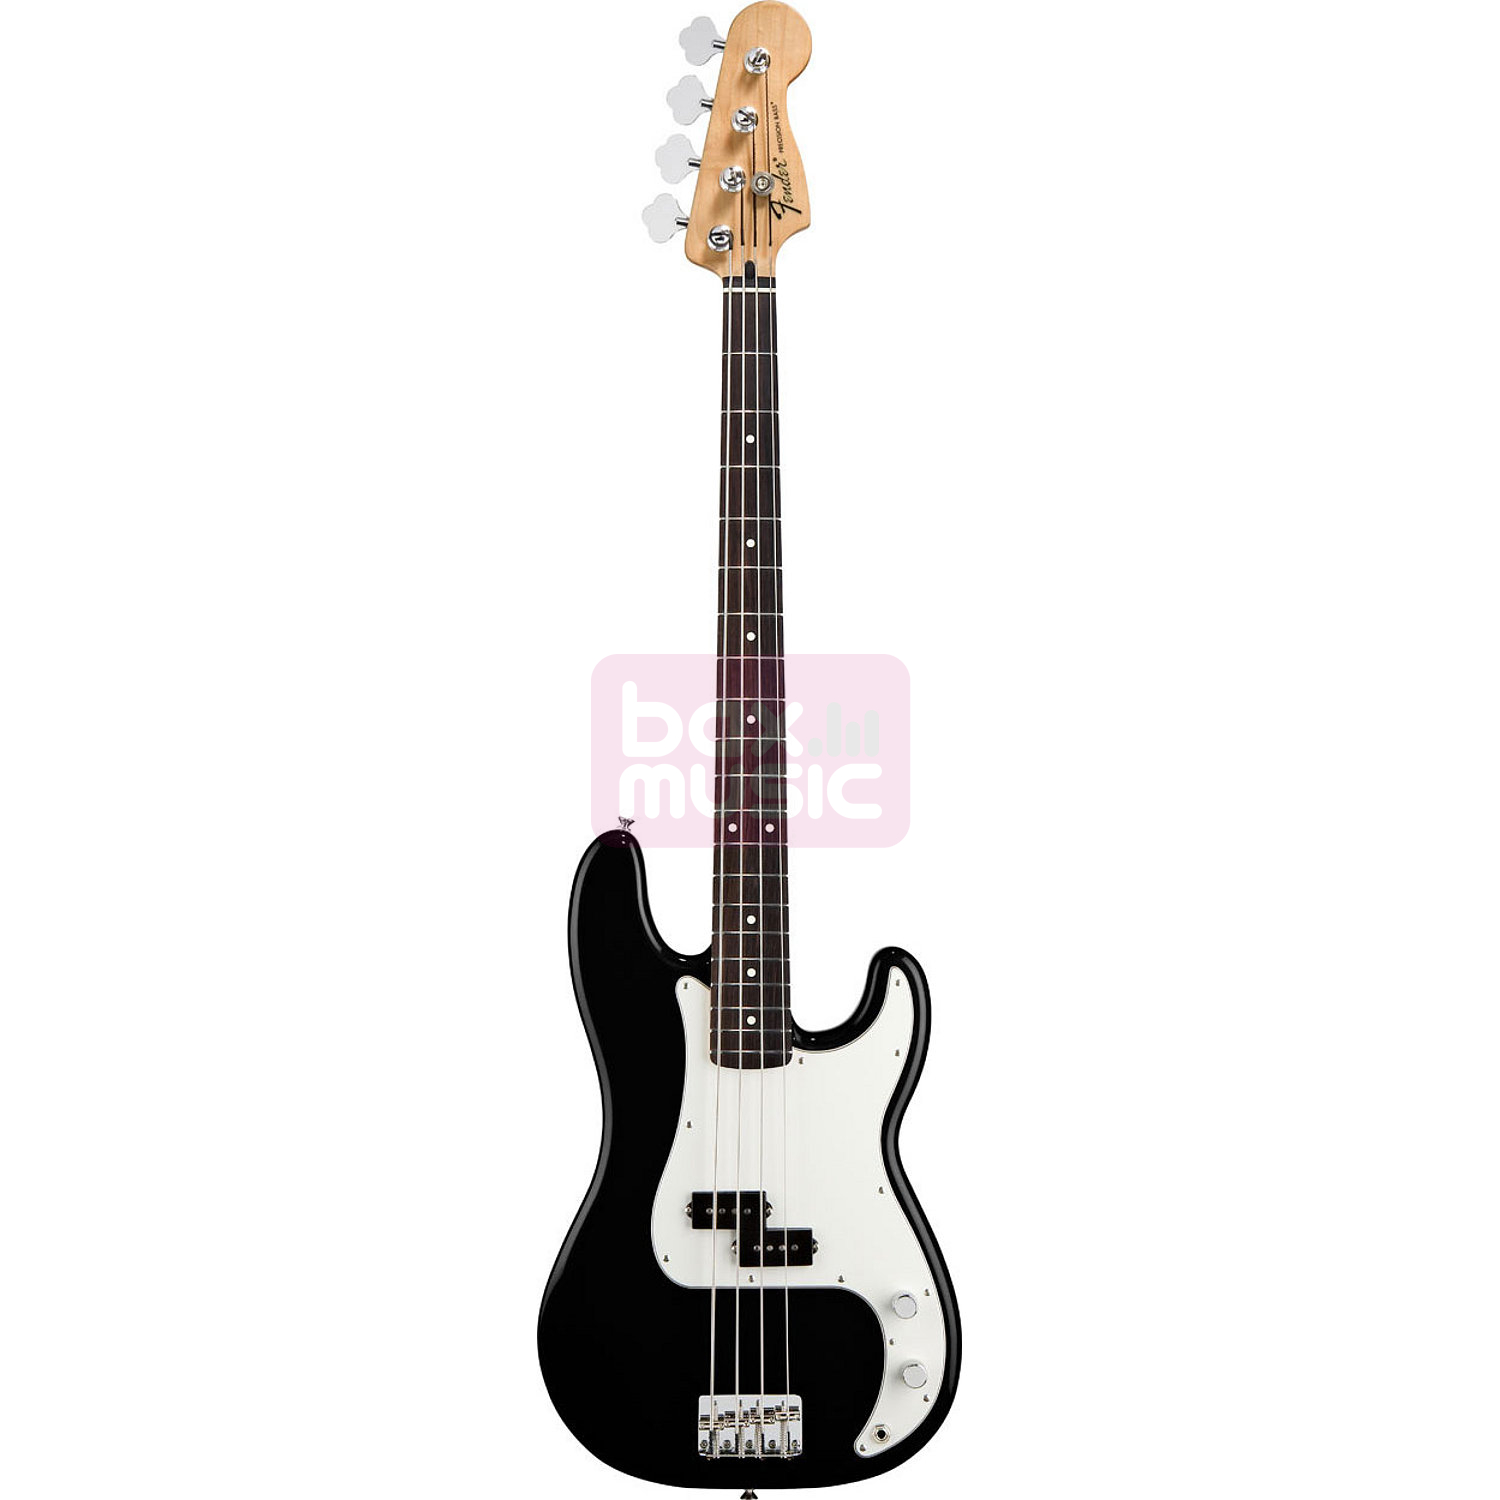 Fender Standard Precision Bass Black RW